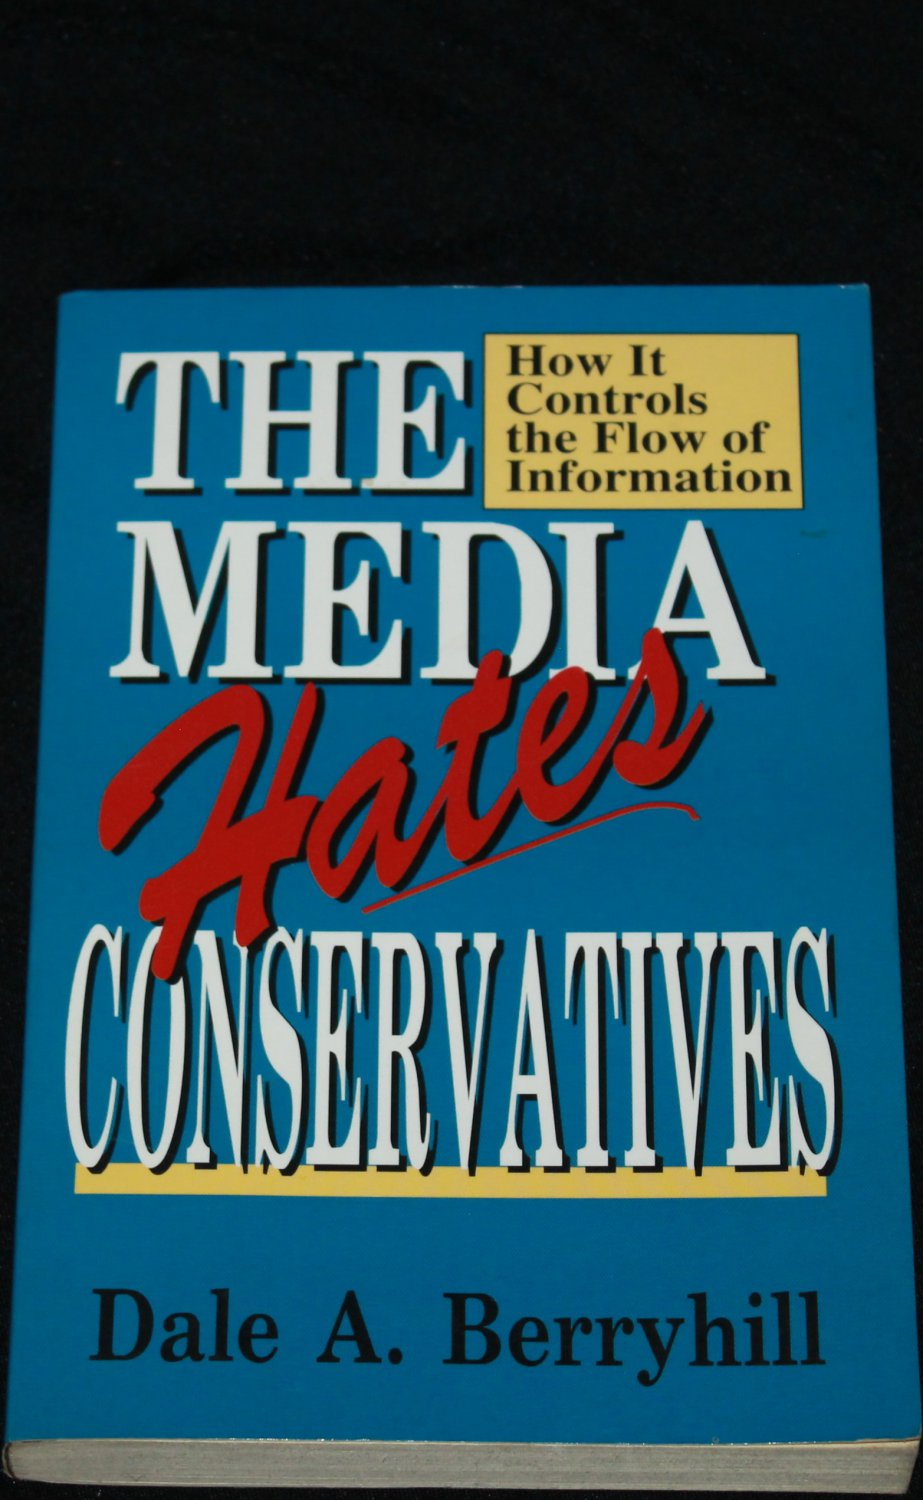 The Media Hates Conservatives - democrat media republican politics book by Dale A. Berryhill